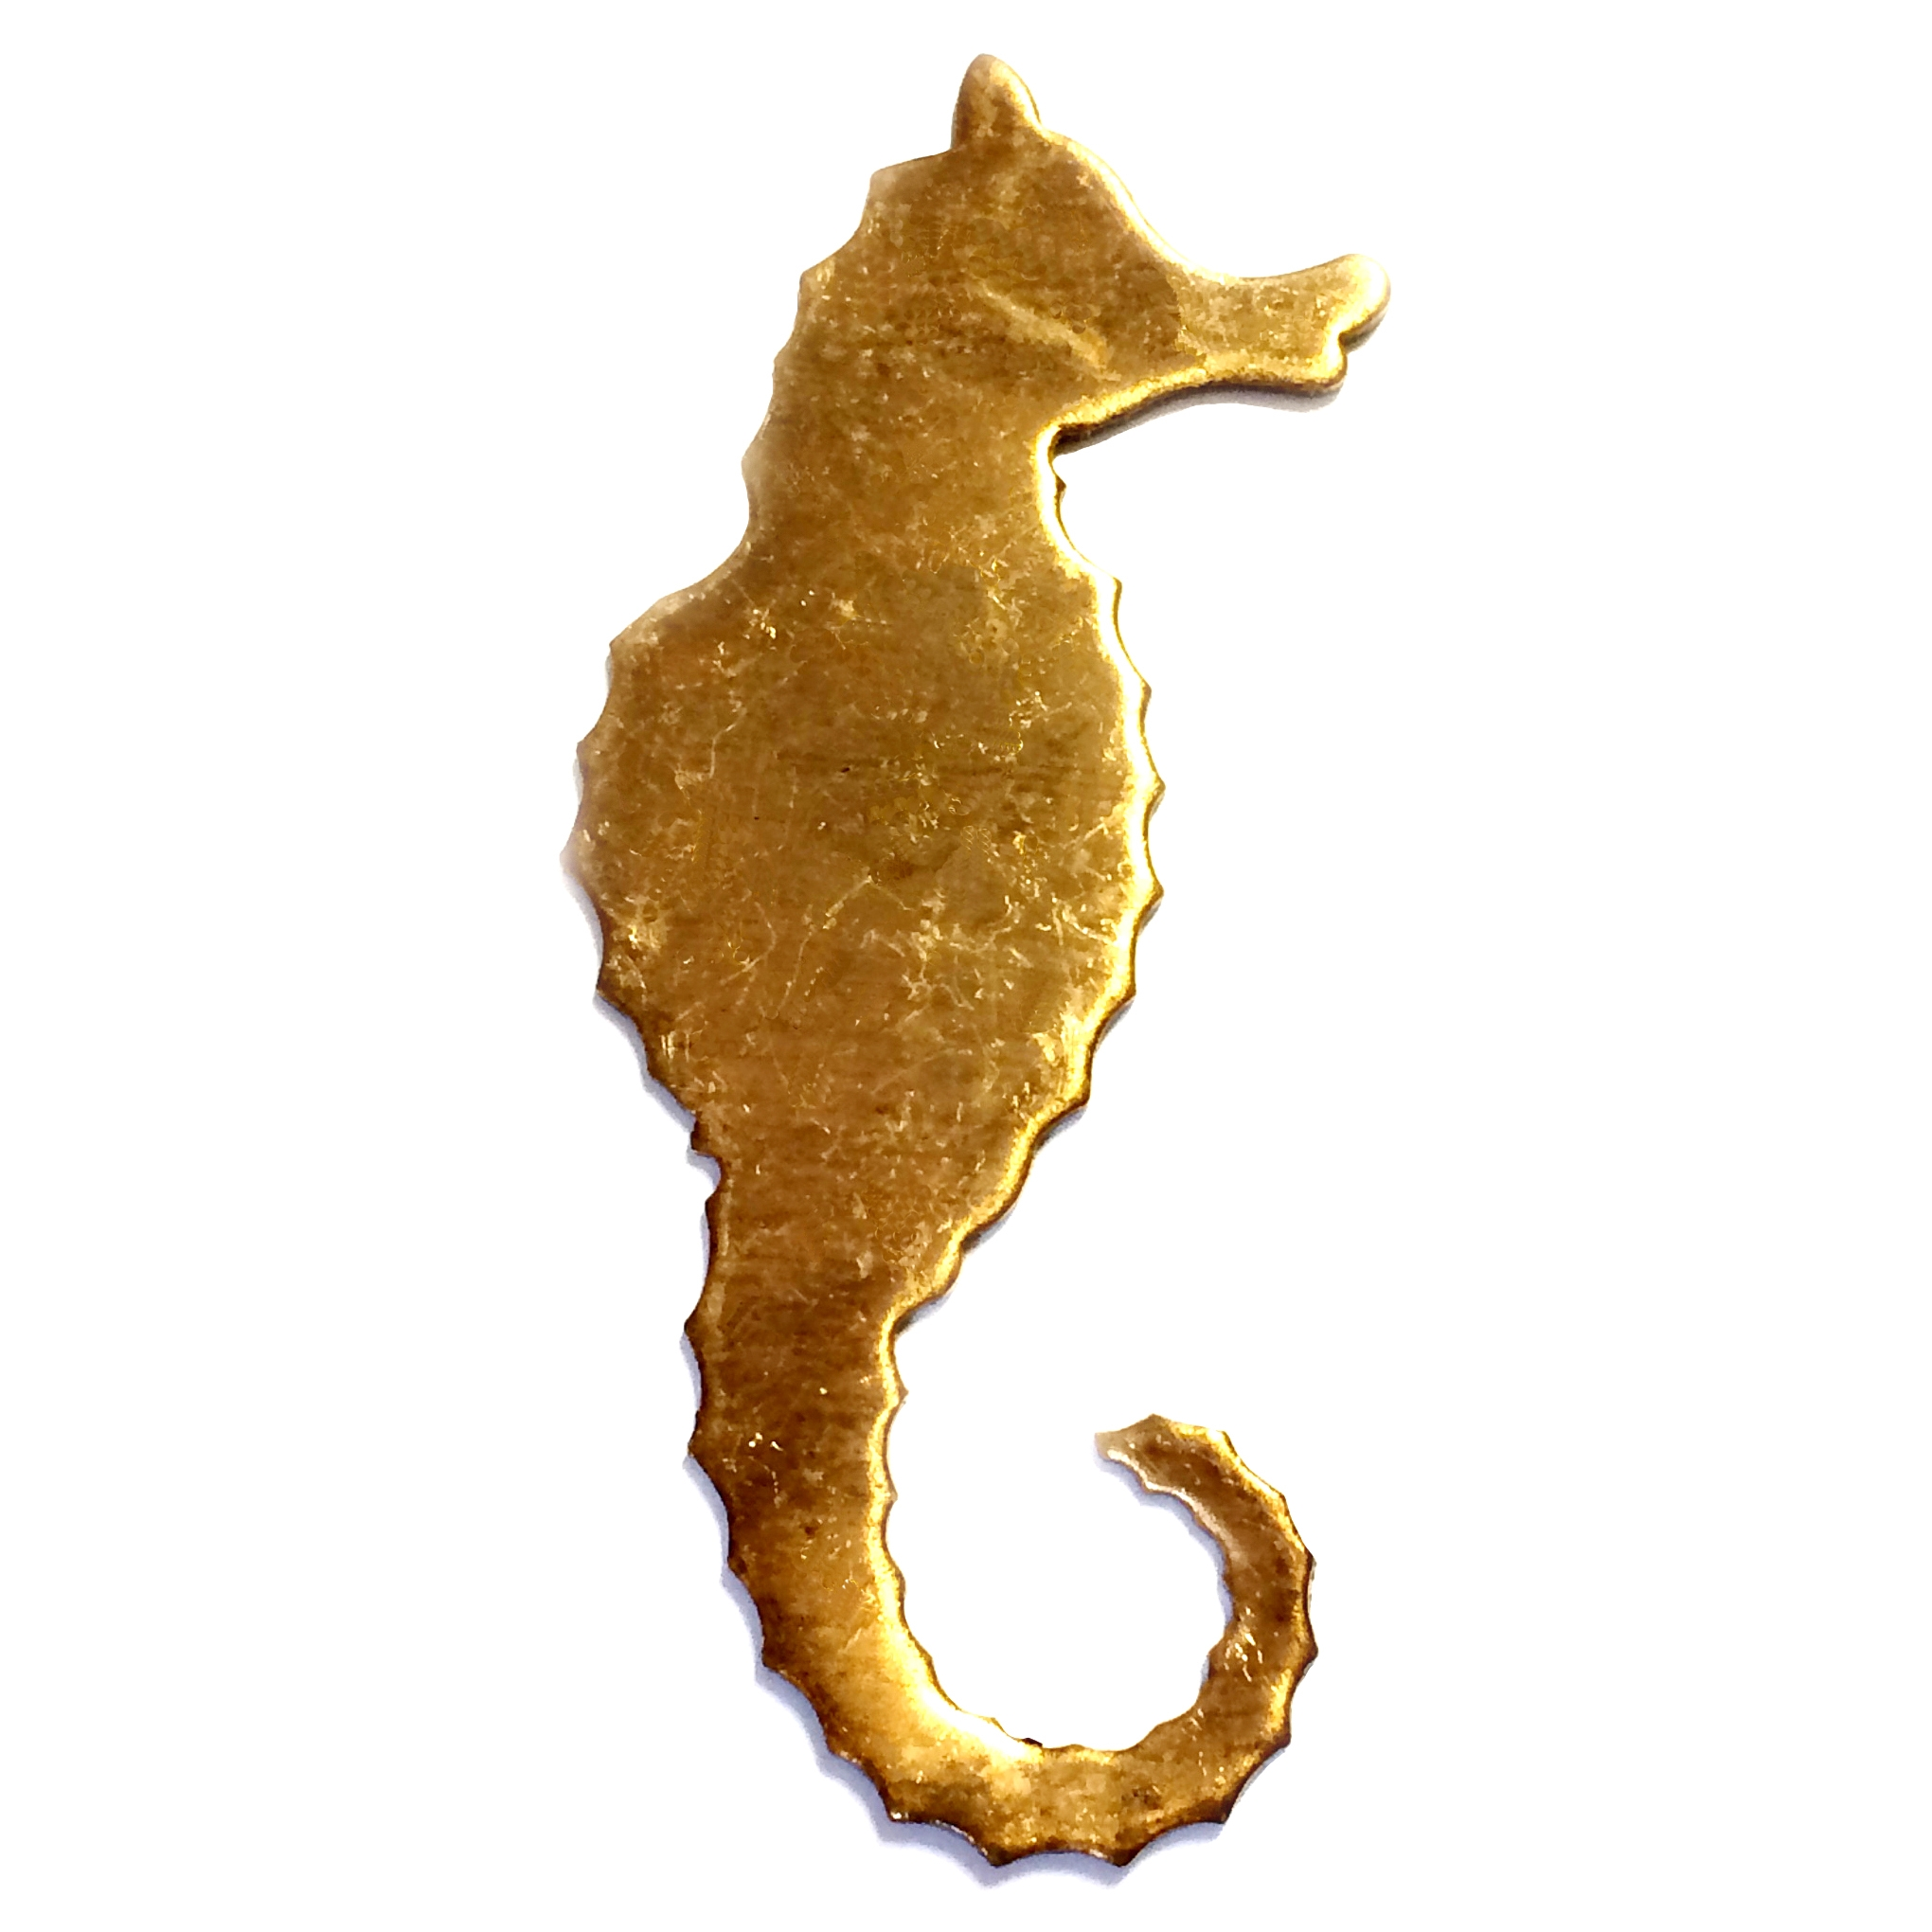 brass seahorse, beach jewelry,  jewelry making, 03208, B'sue Boutiques, nickel free, US Made, jewelry supplies, jewelry making, vintage jewelry supplies, brass jewelry parts, mold making jewelry